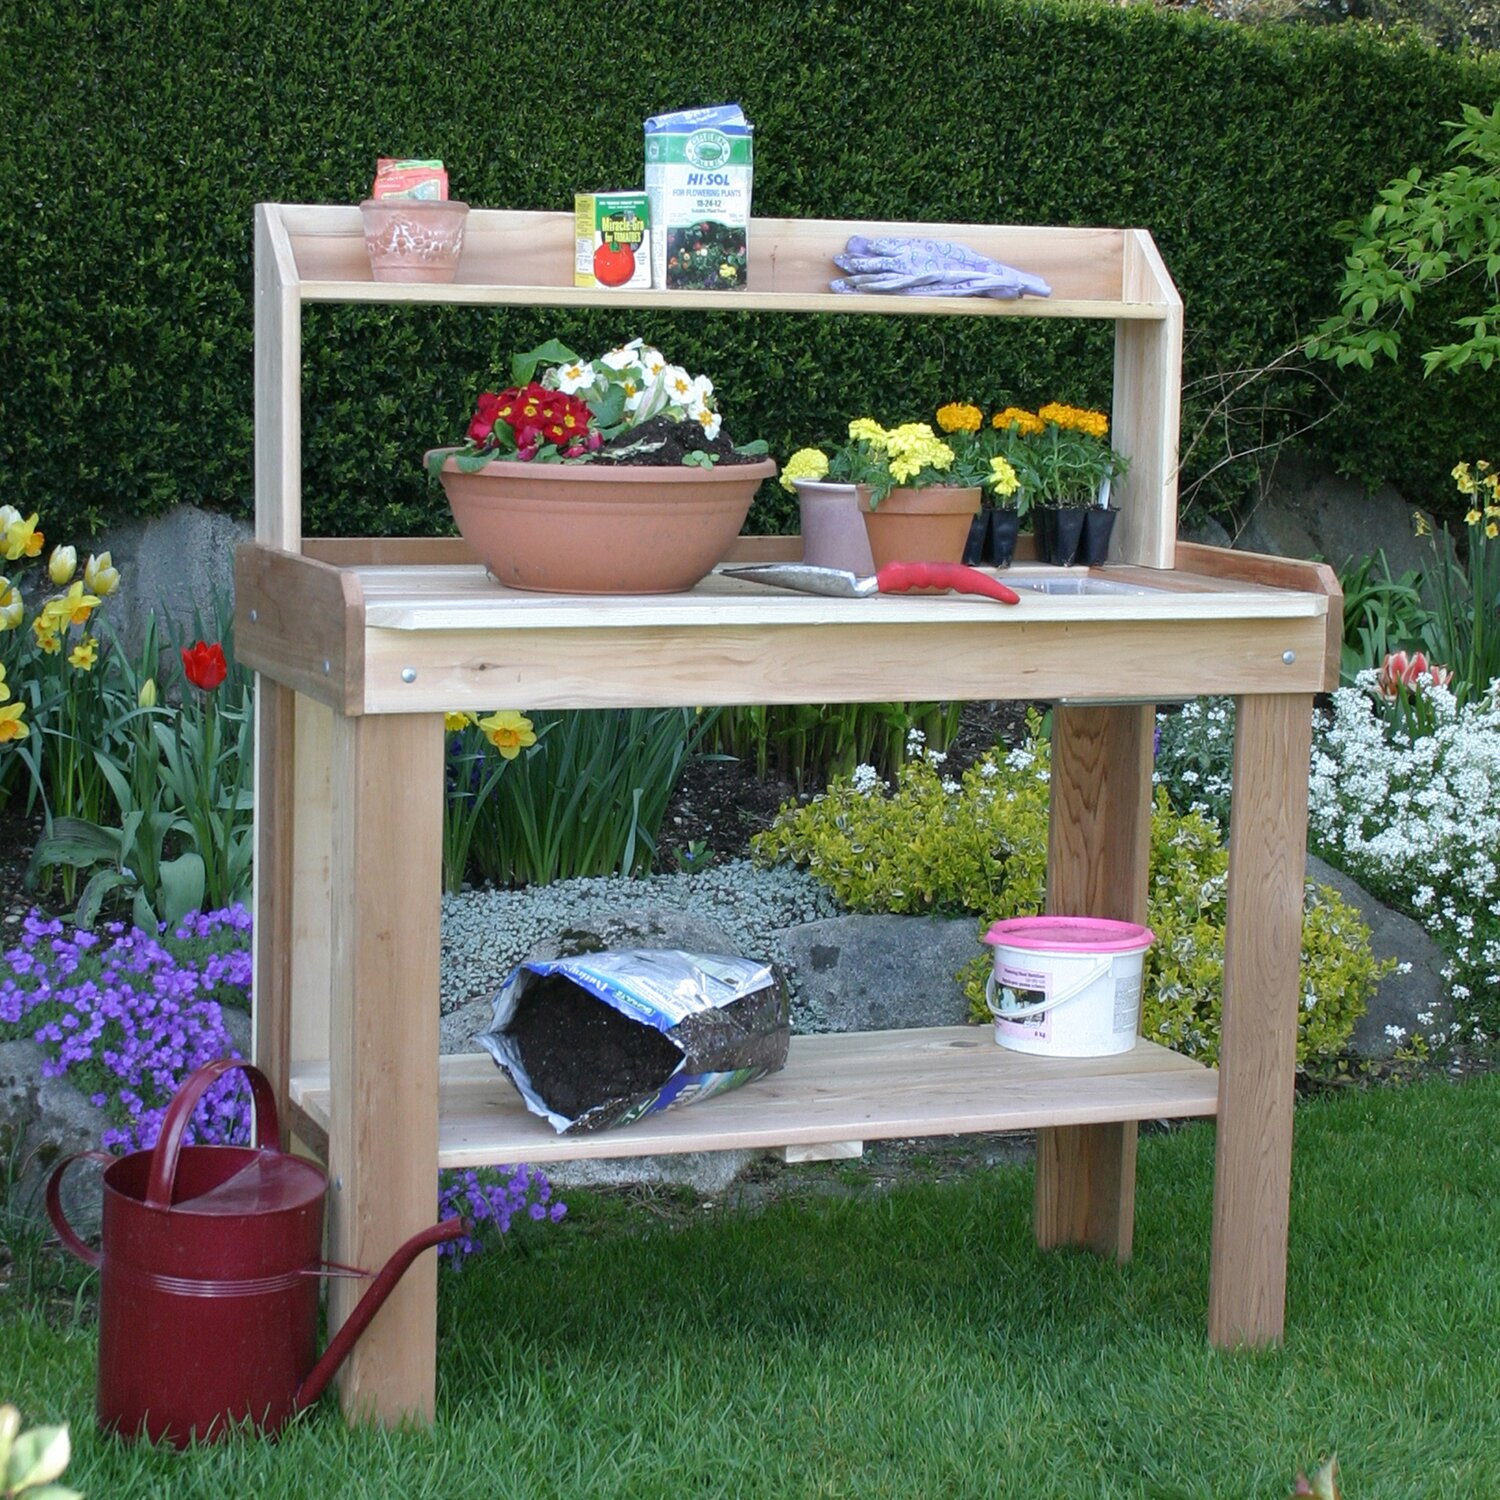 Garden Potting Bench: Potting Bench